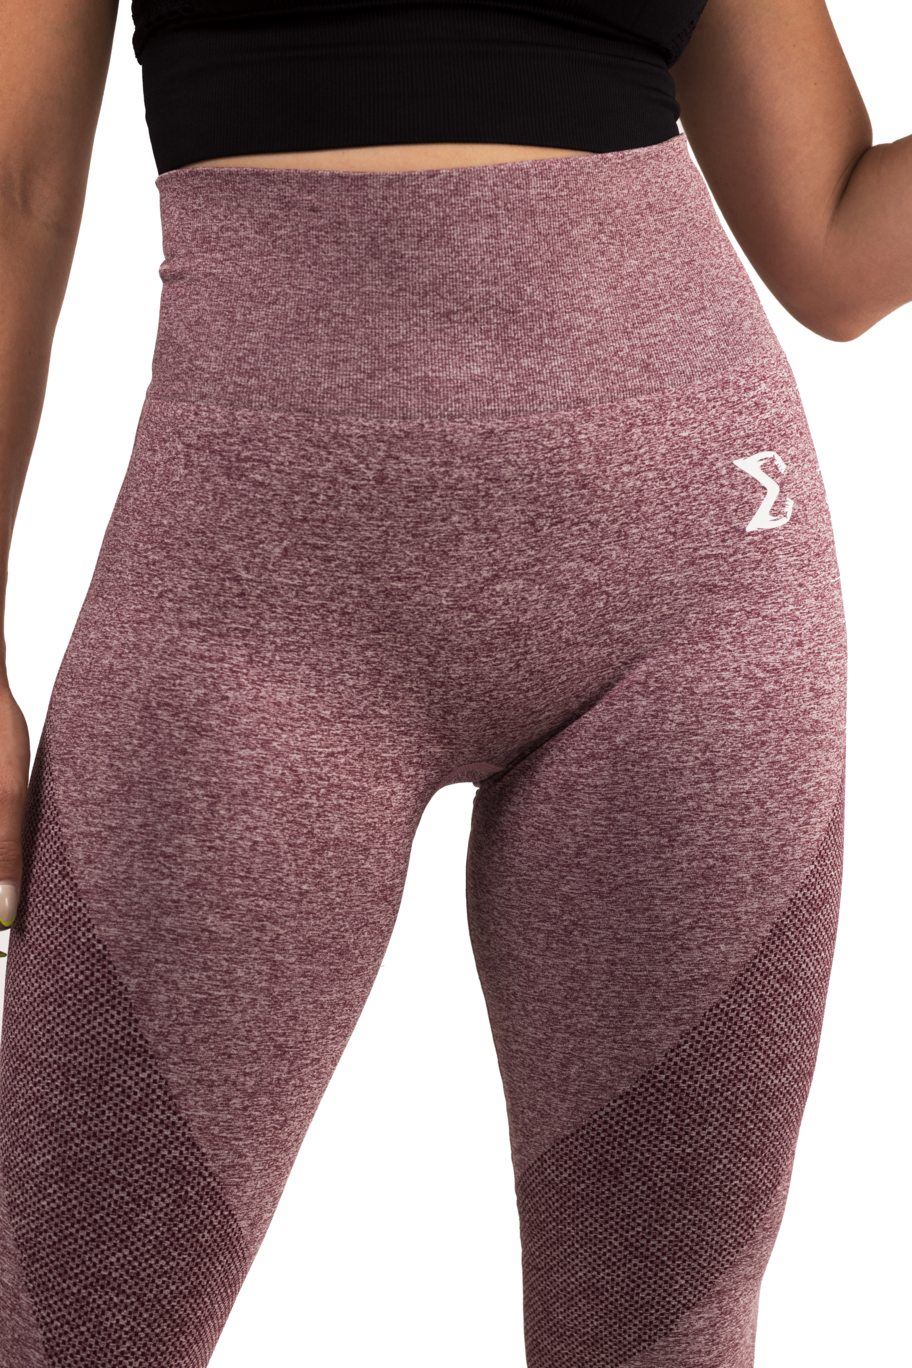 Flex Leggings (Maroon) - Sigma Fit US